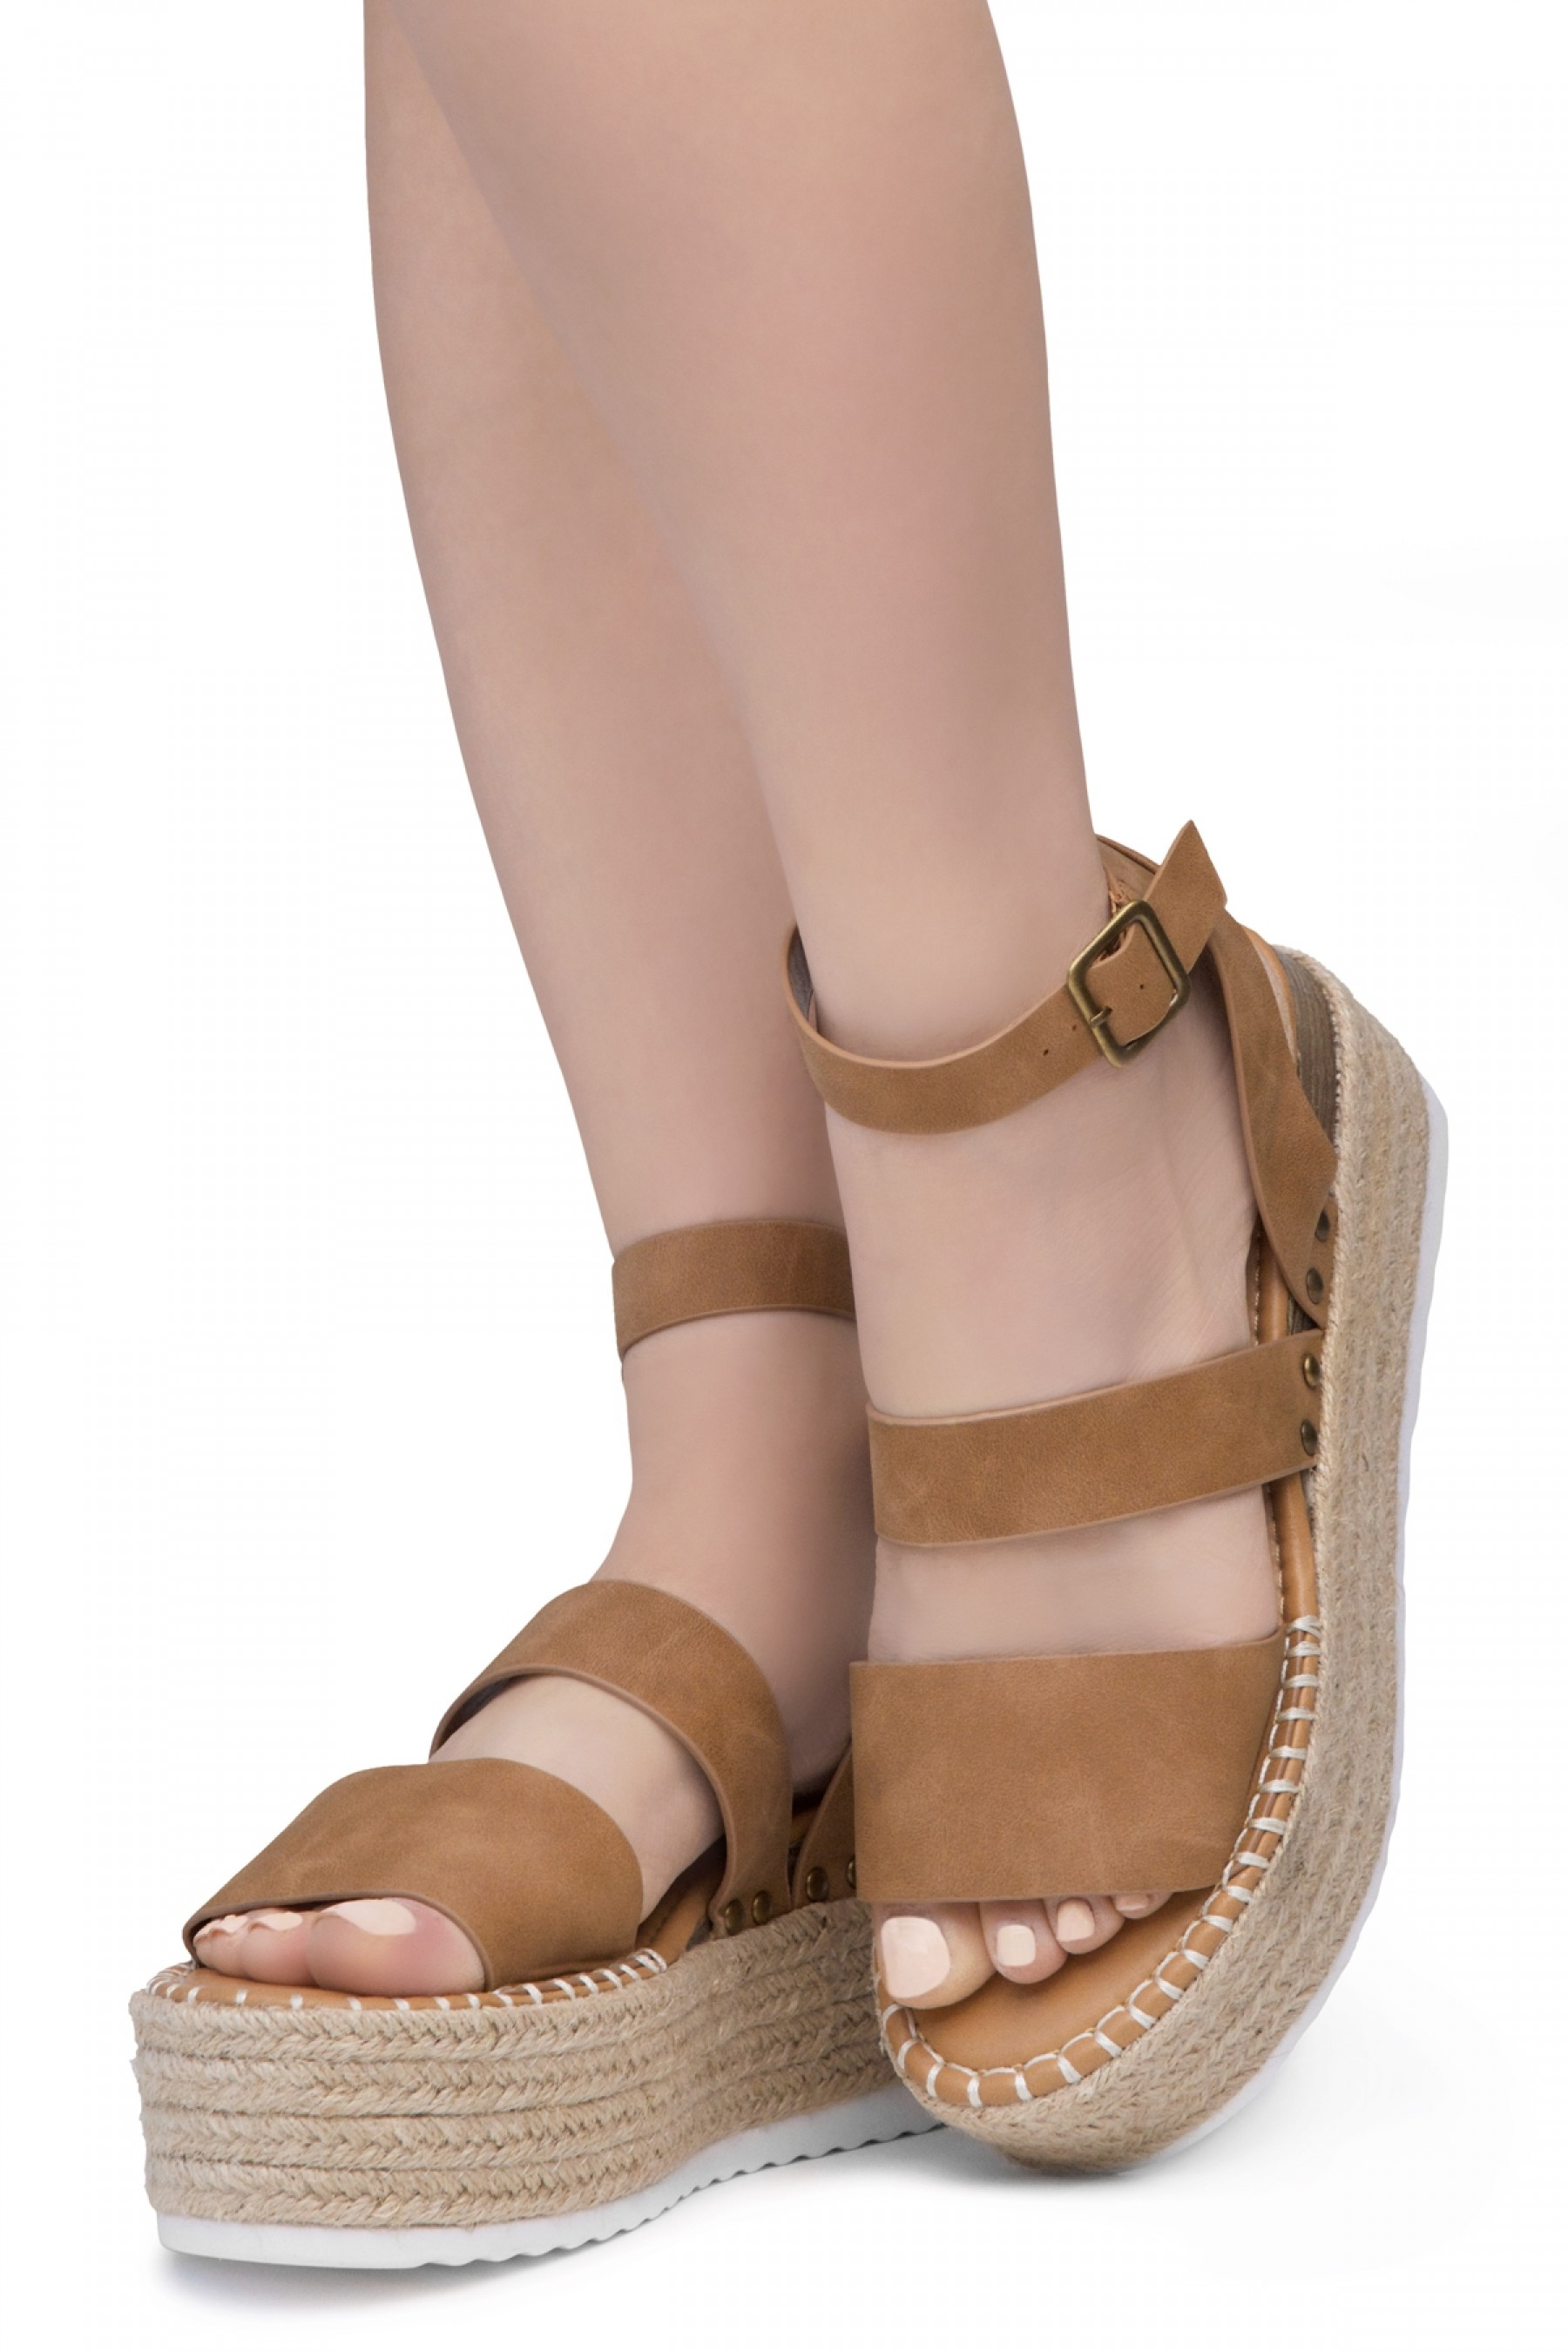 Shoe Land SL-Capri Womens Open Toe Ankle Strap Platform Sandals Causal Espadrille Wedge Shoes(Tan)